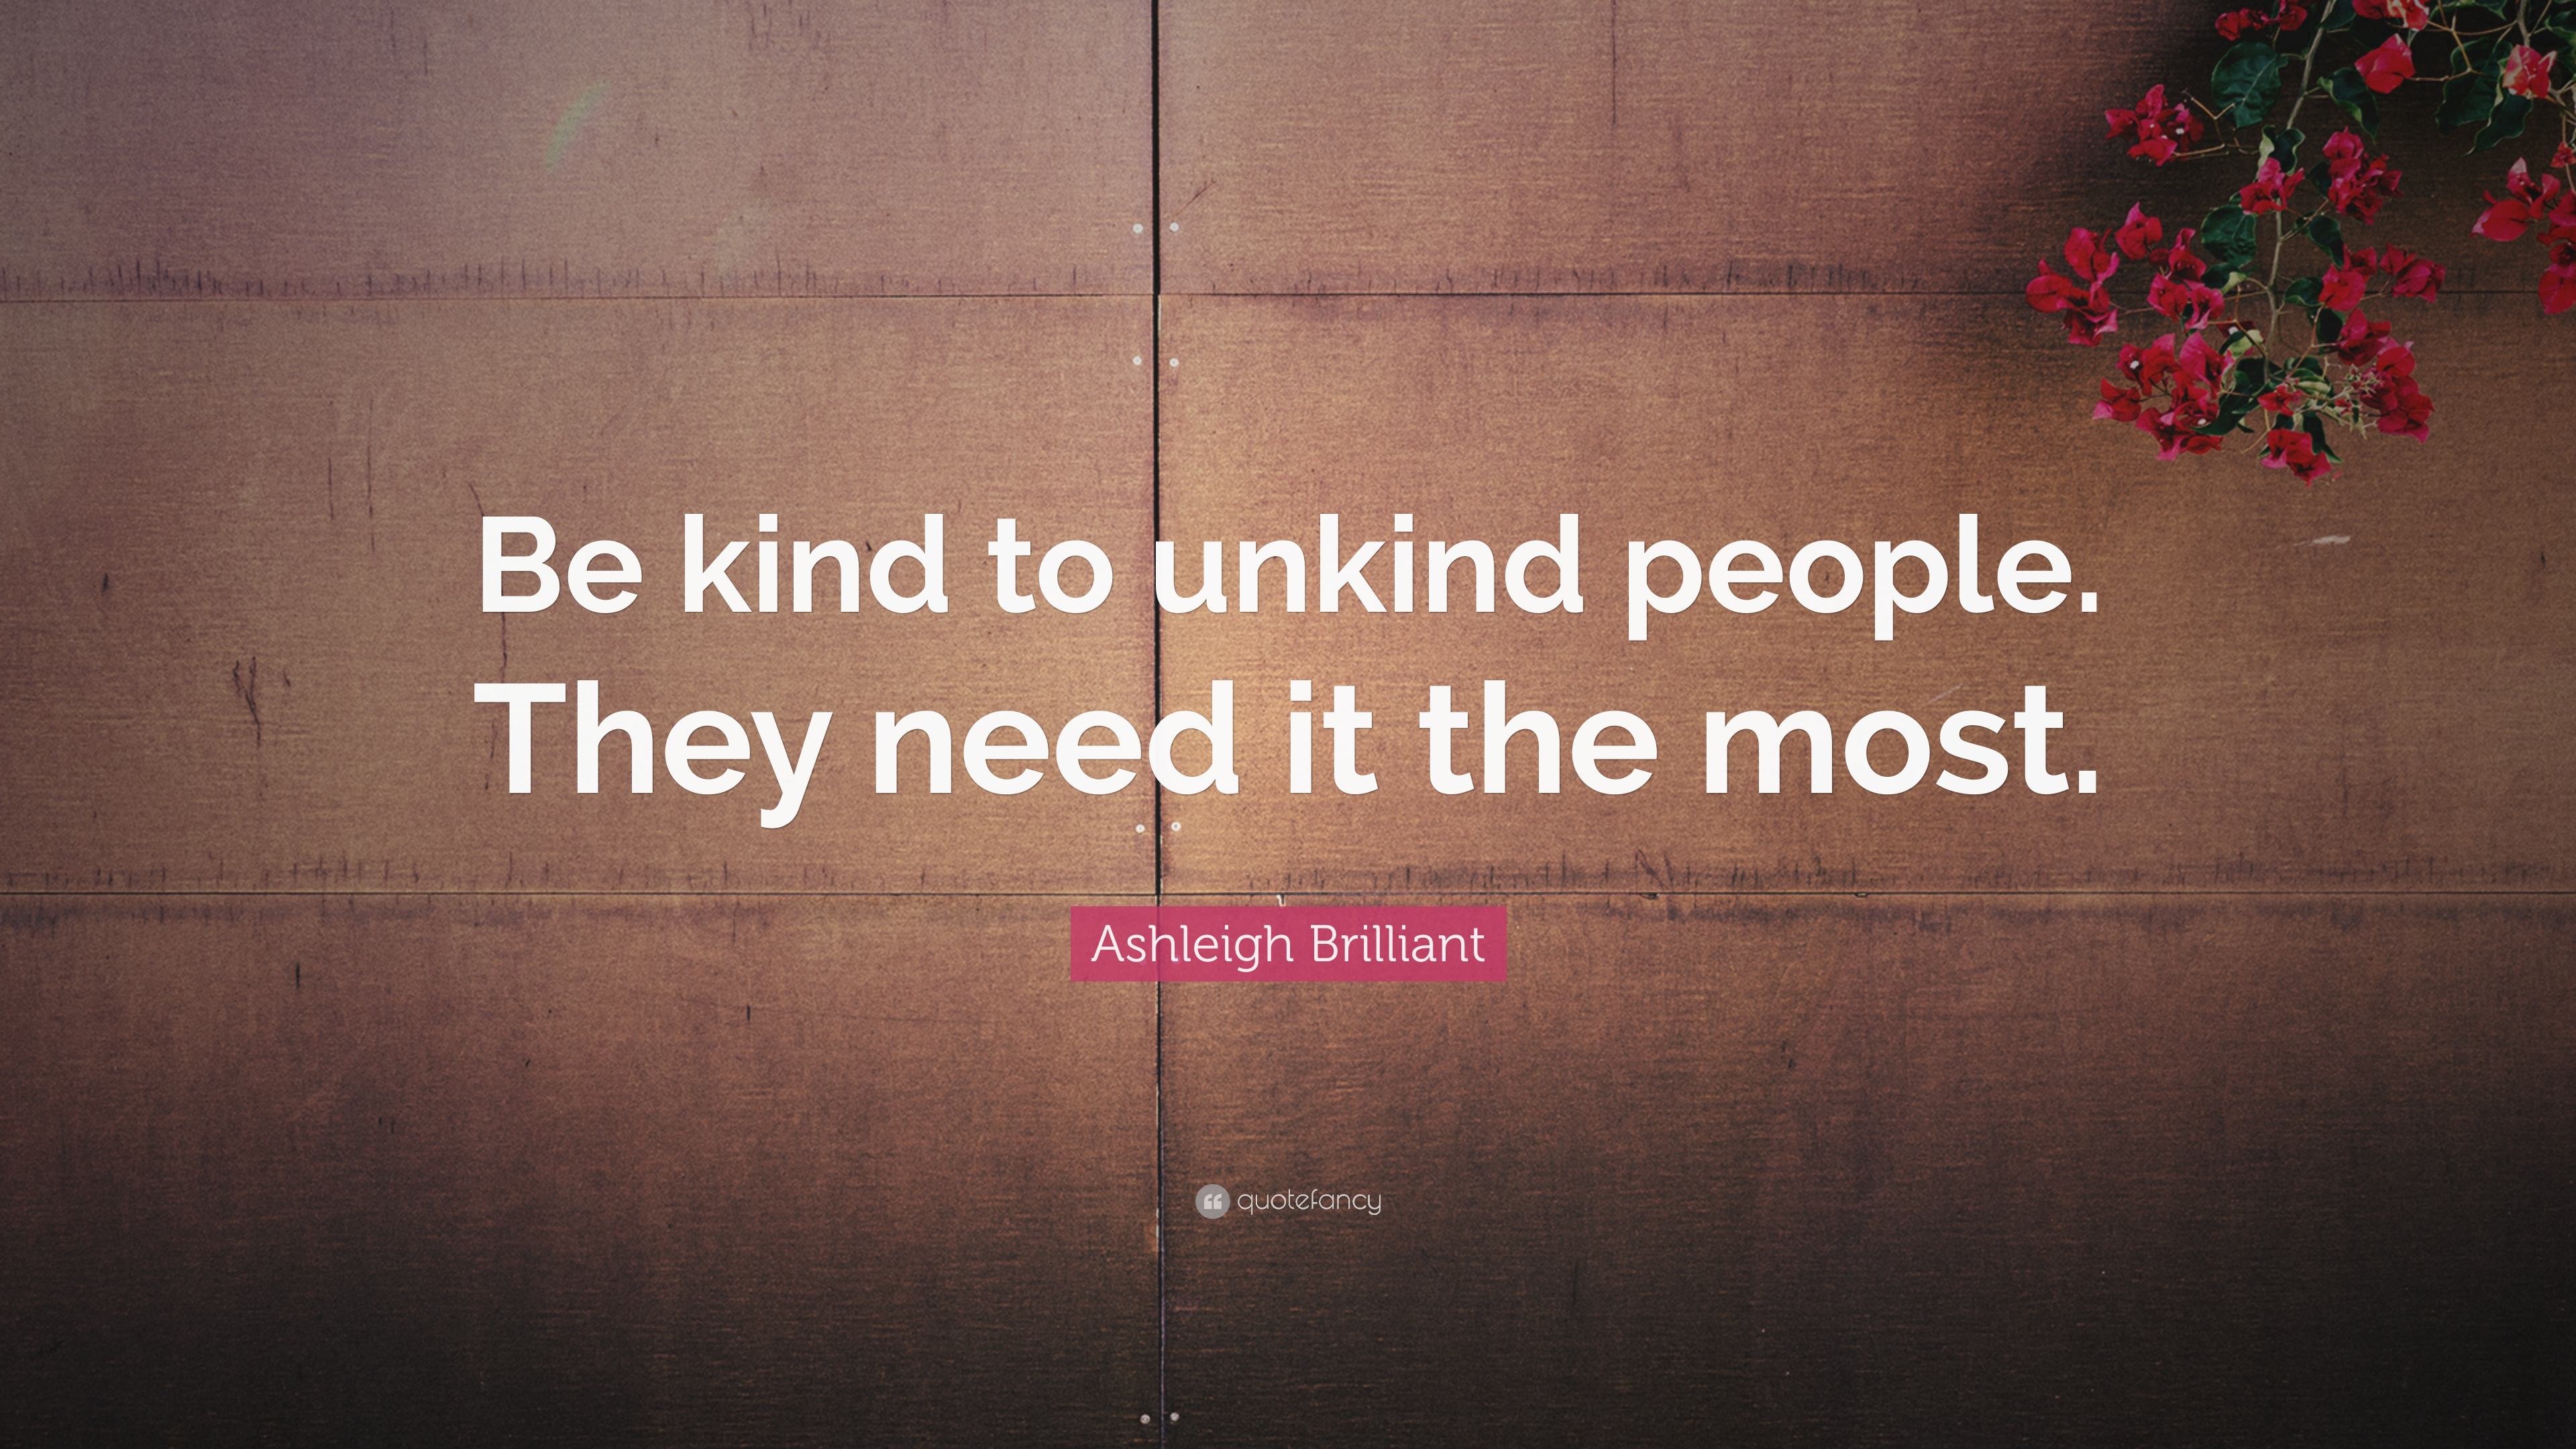 Ashleigh Brilliant Quote: Be kind to unkind people. They